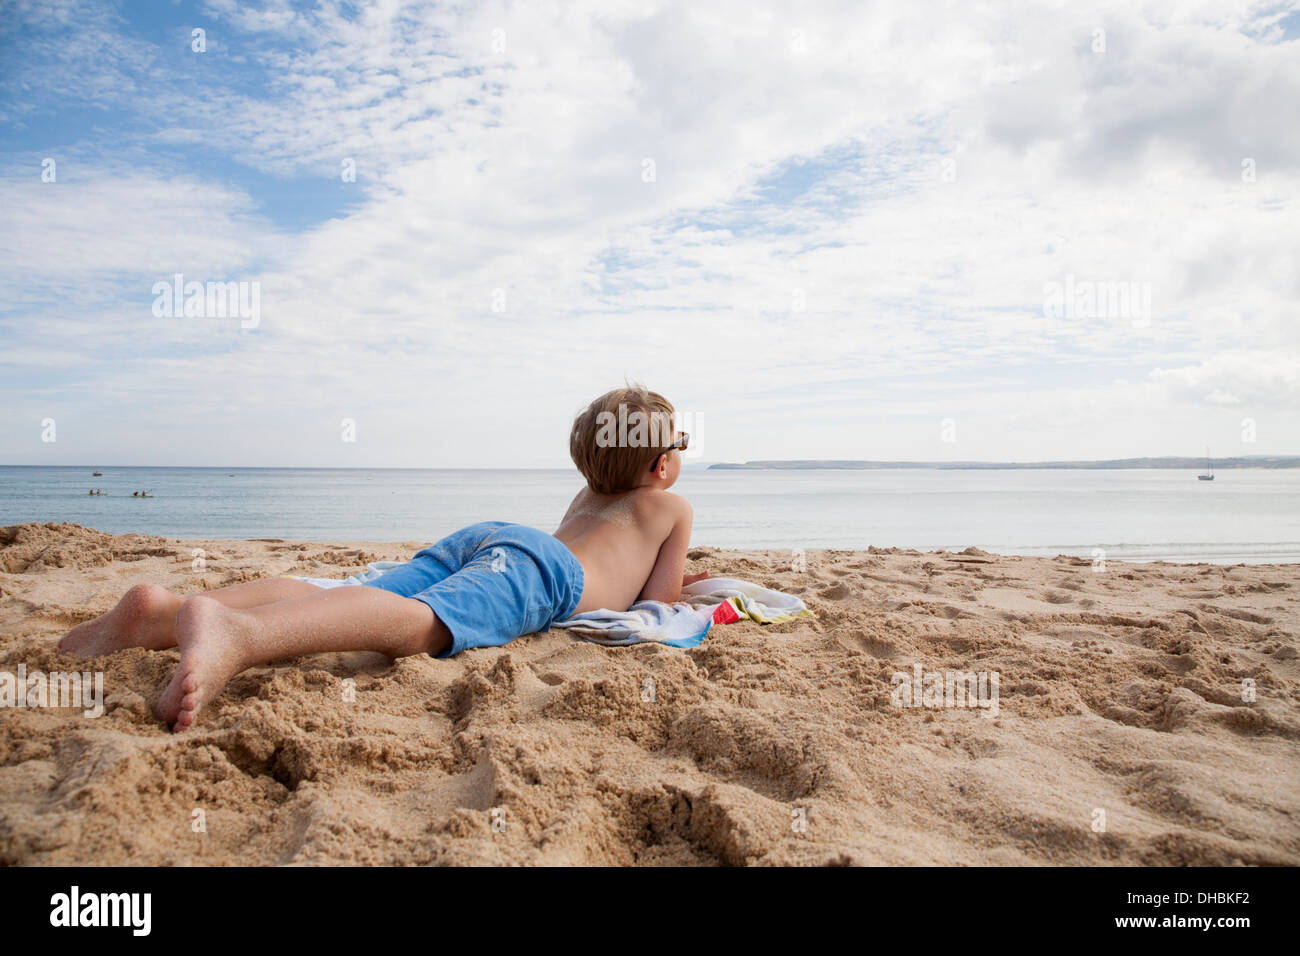 A boy lying on his front on the sand looking out to sea. - Stock Image